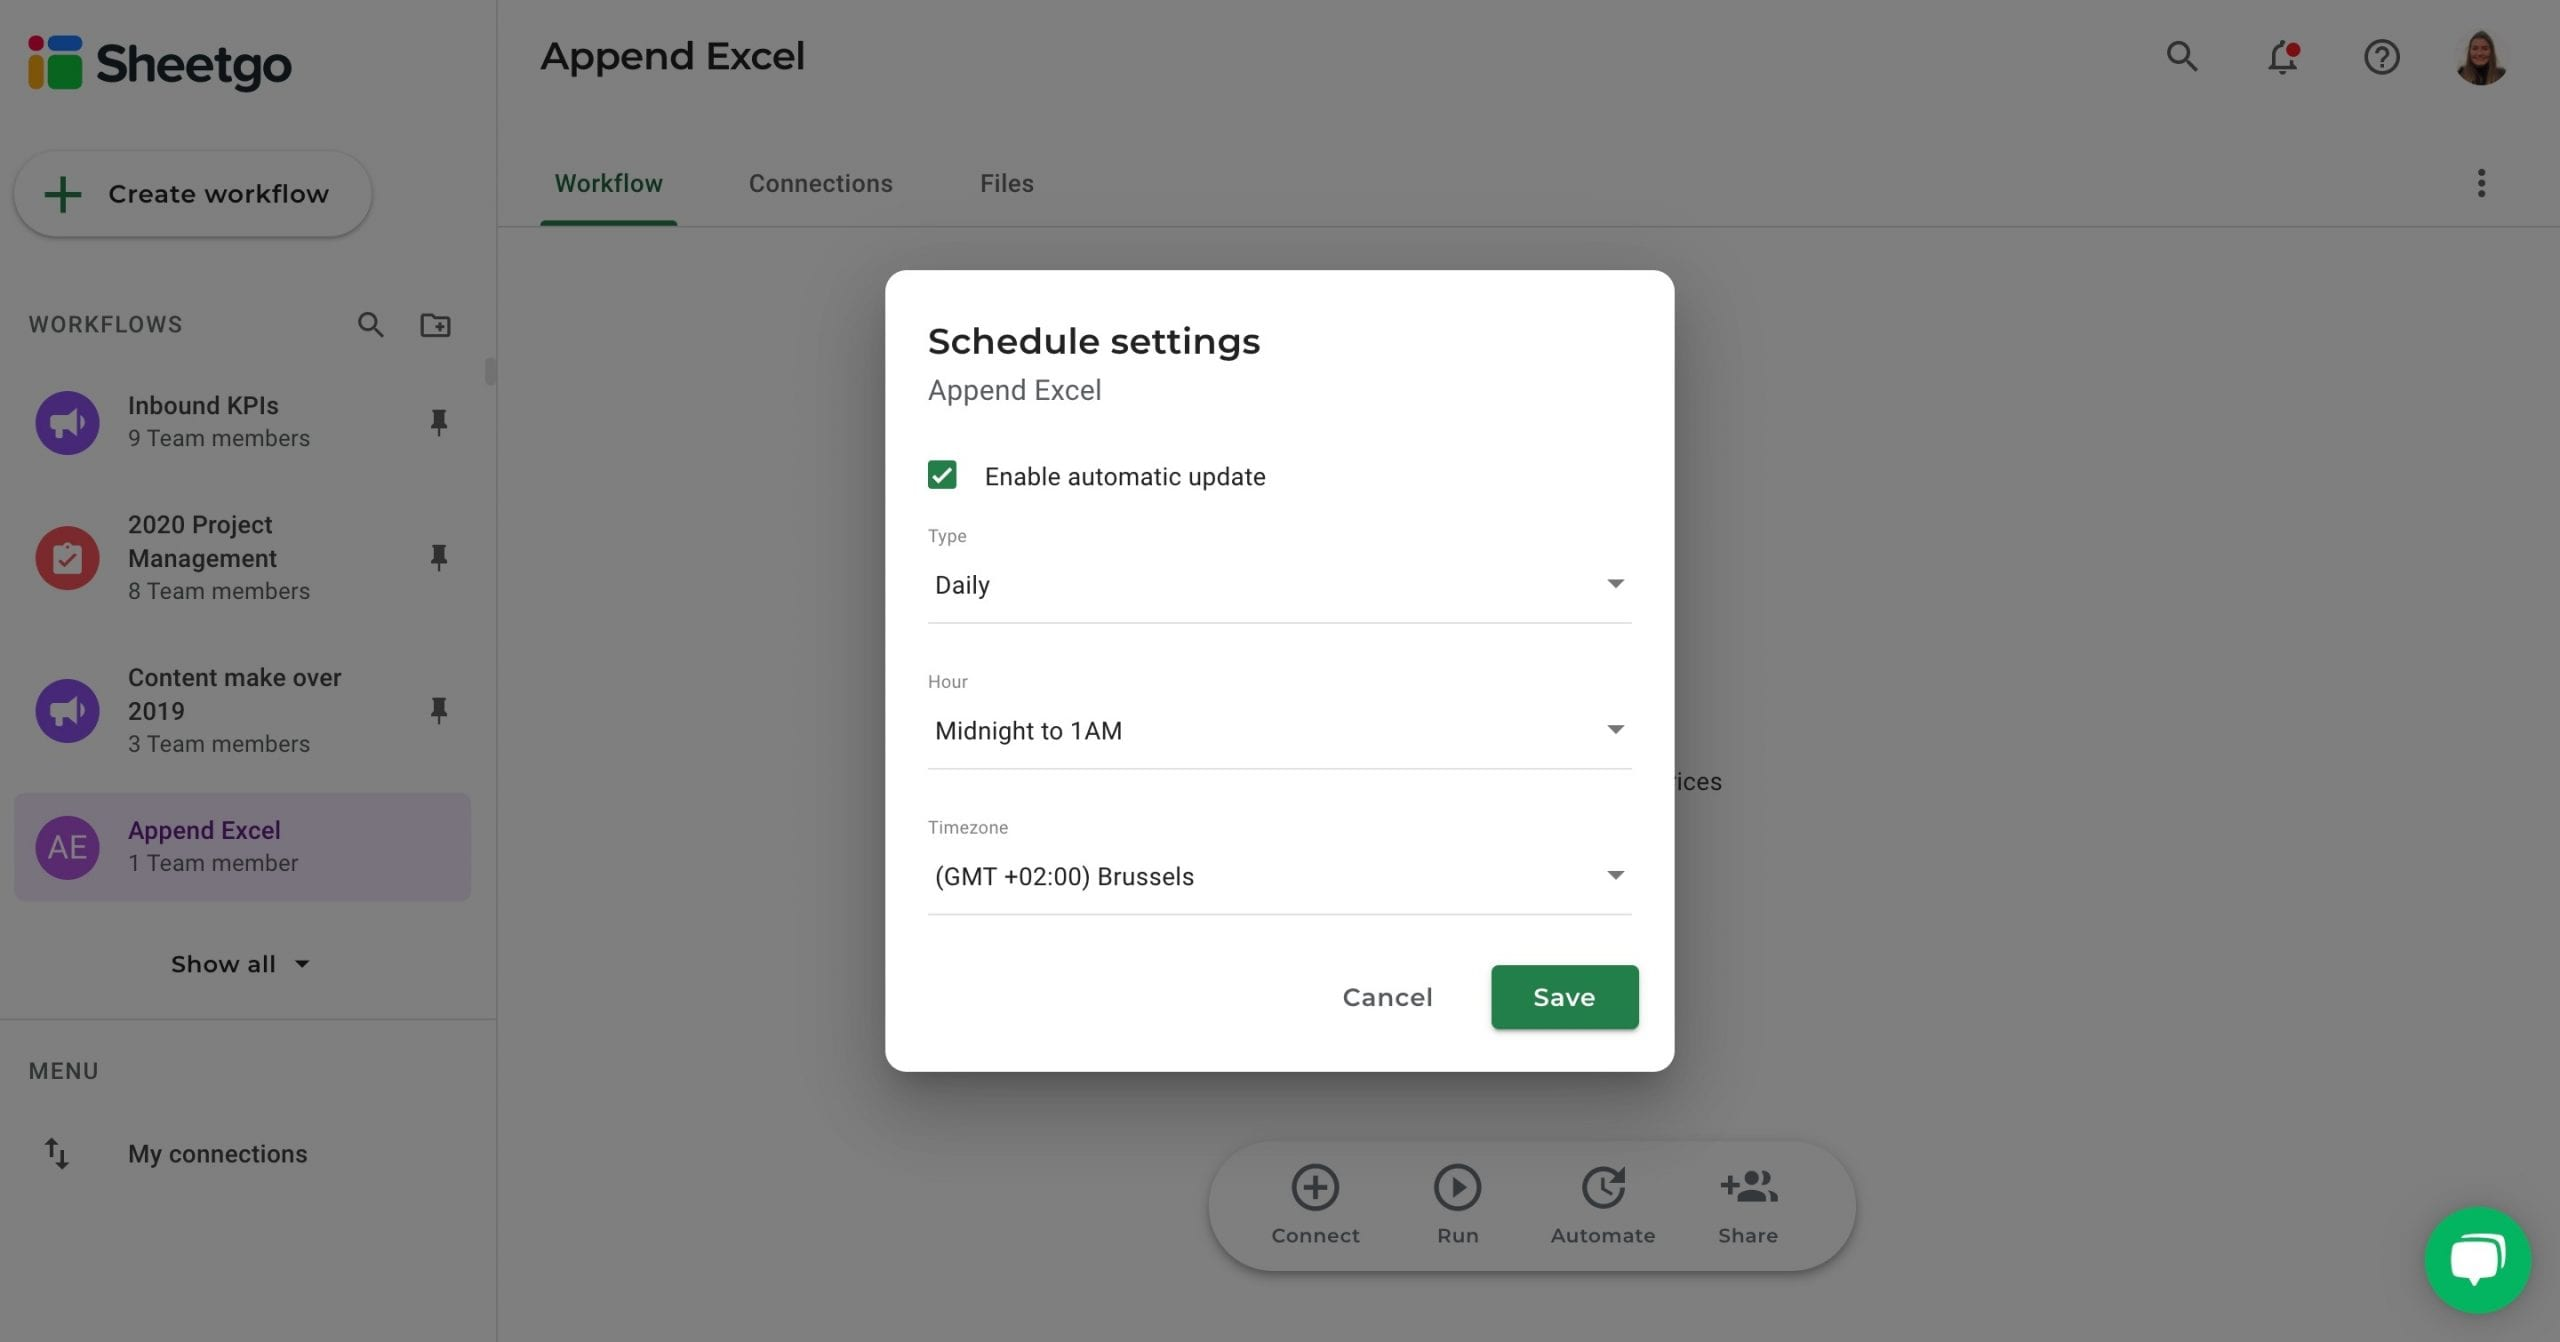 Append Excel automatic updates Sheetgo